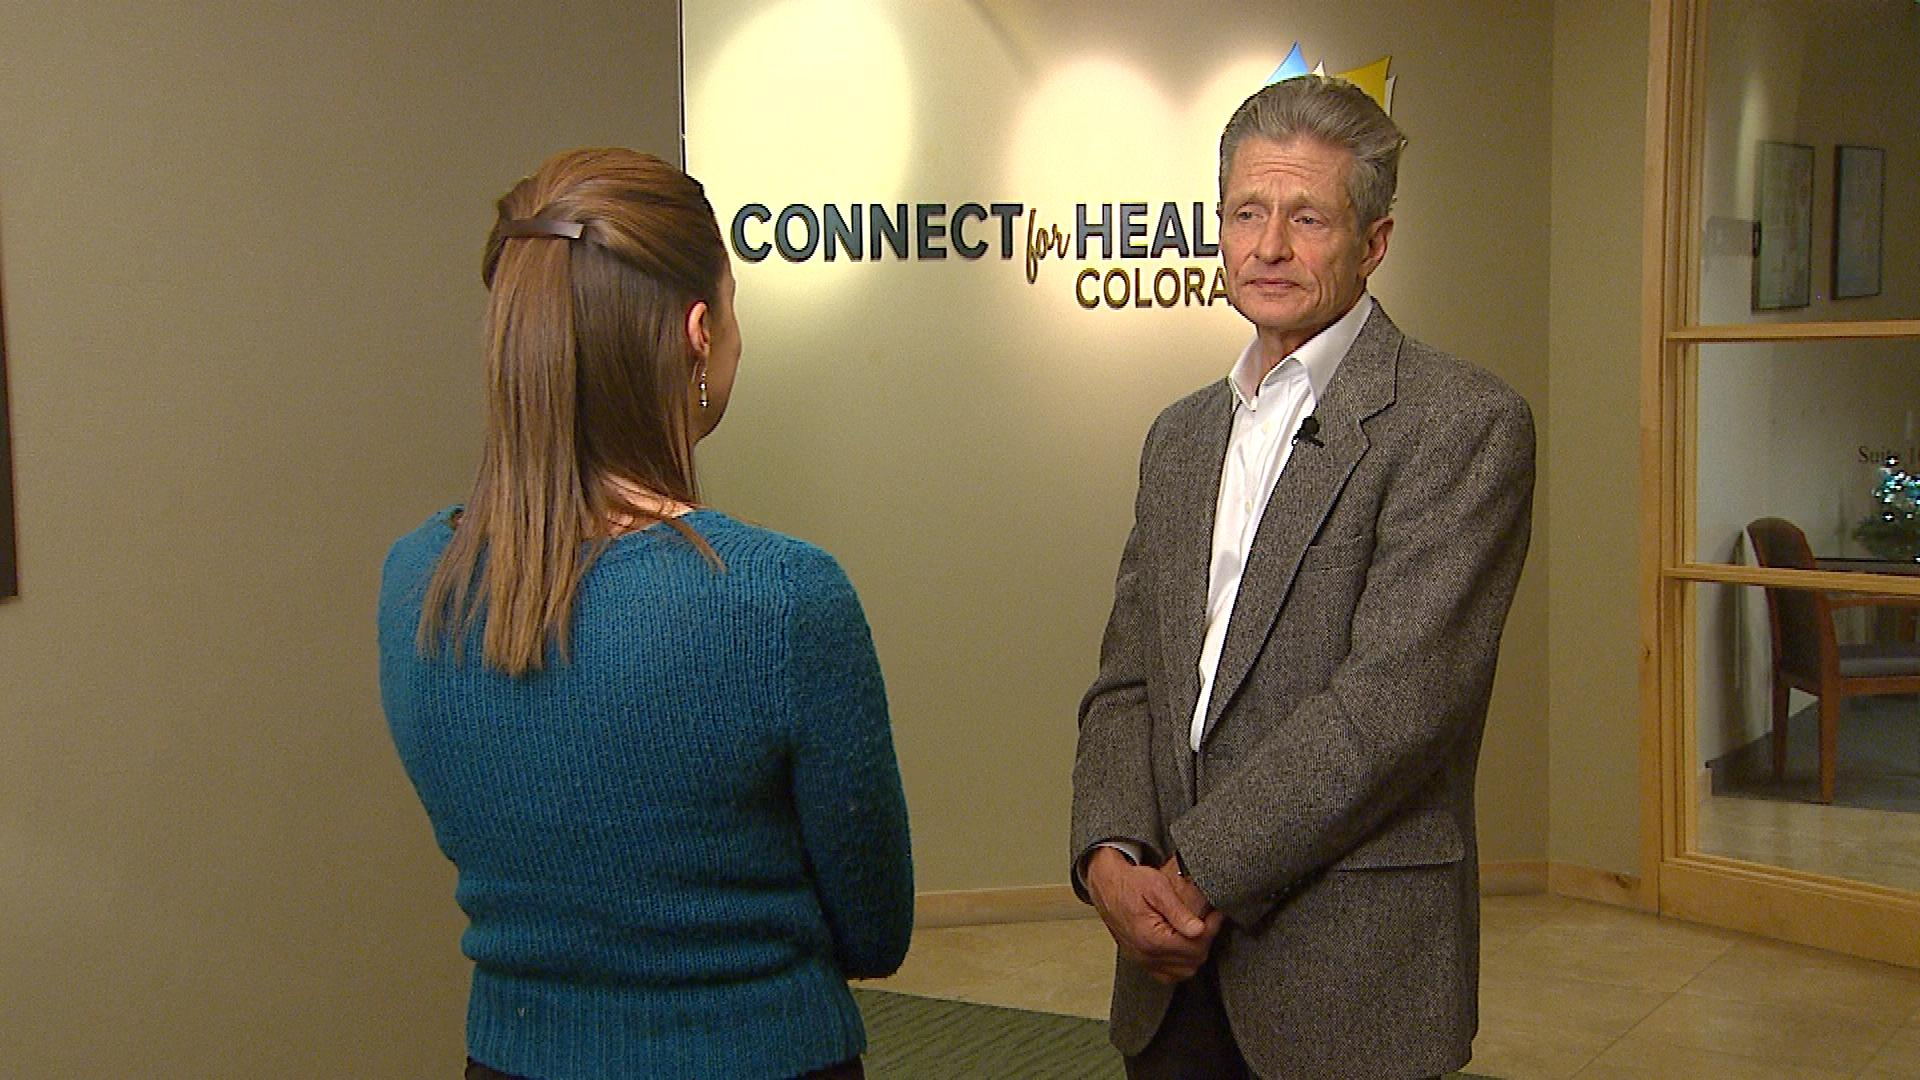 CBS4's Melissa Garcia interviews Luke Clarke with Connect for Health Colorado (credit: CBS)